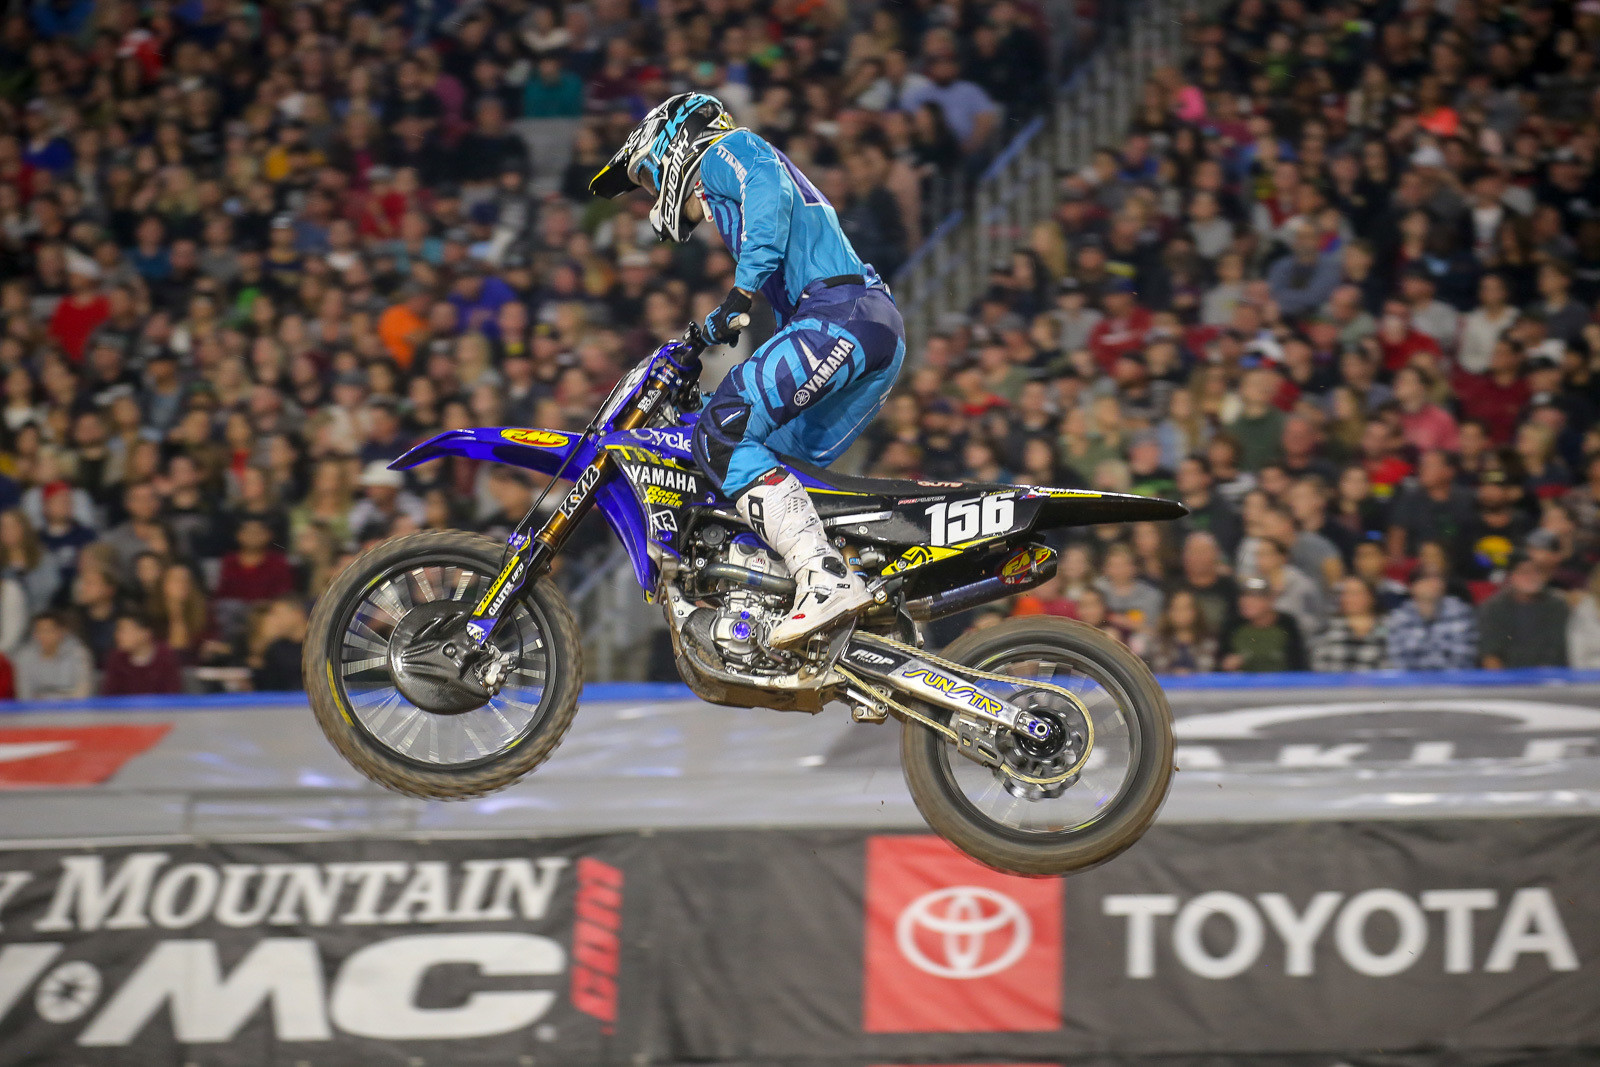 With the old Arenacross series being shuttered after the end of the '18 season, it's been interesting to see a couple of the AX refugees in action on the SX side. The final champ, Jacob Hayes, has shown good speed at the first couple of rounds. Check out the audio clip below to hear his thoughts on the season so far.